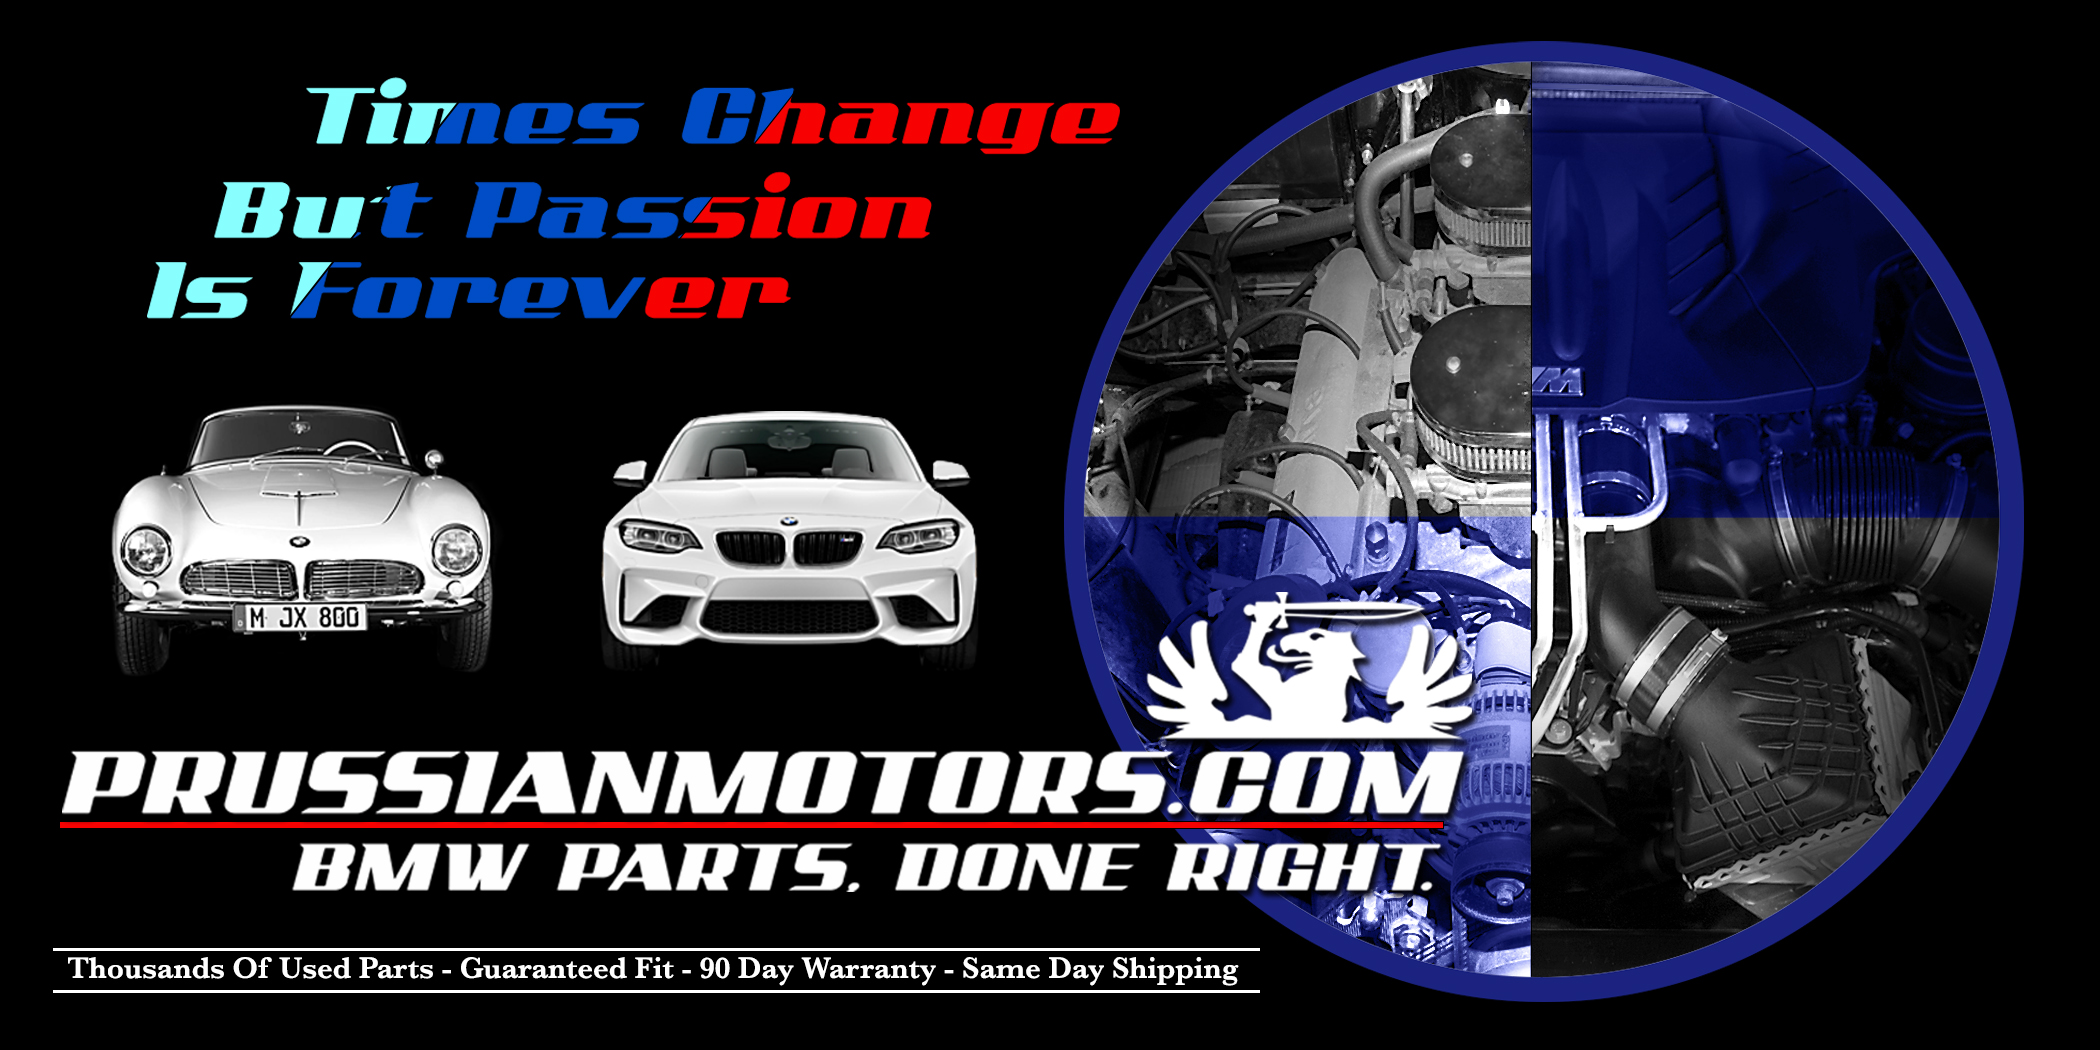 Our used BMW parts shop